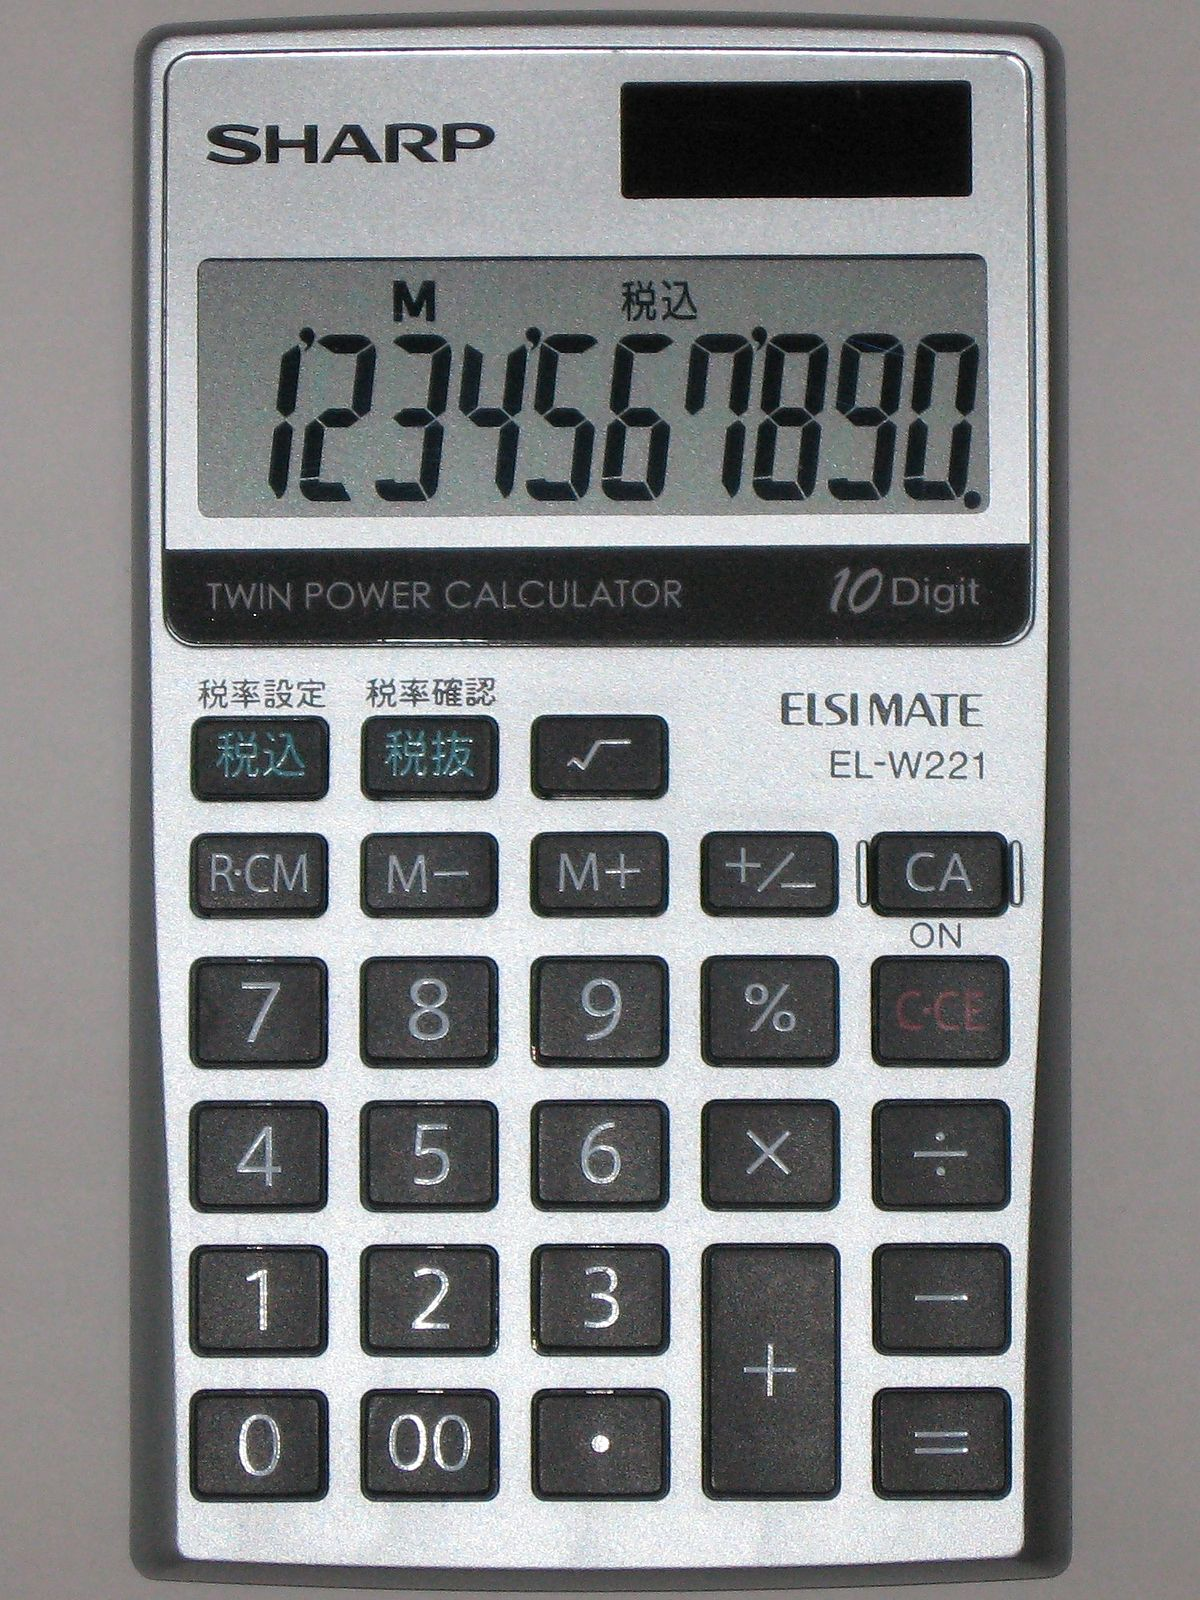 Calculator wikipedia ccuart